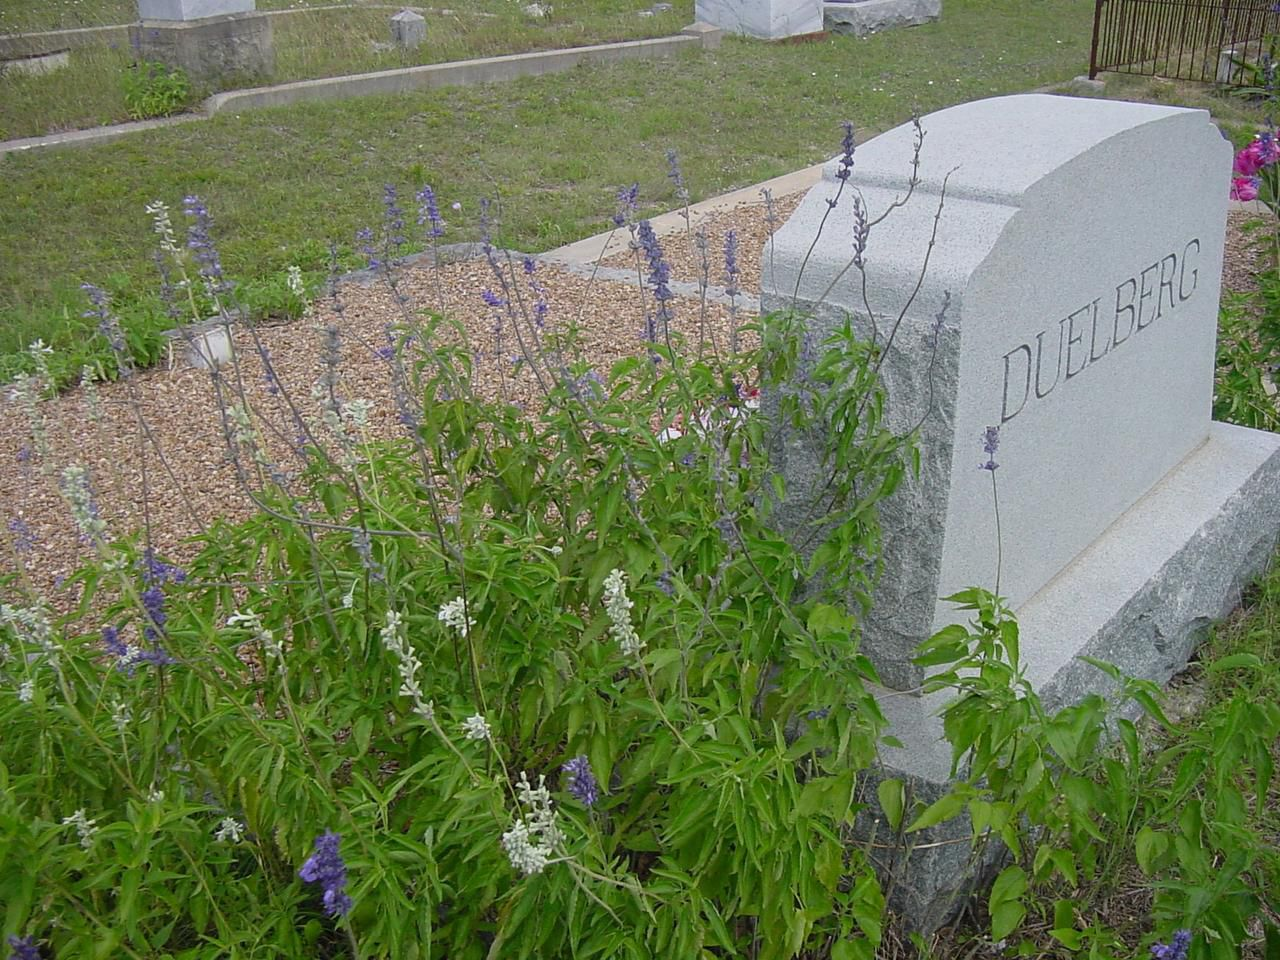 Horticulturist Greg Grant discovered the Duelberg salvias growing next to their headstone in Fayette County. He took cuttings, propagated both the blue- and white-flowered plants and tested them for several years to confirm both are Texas-tough selections.